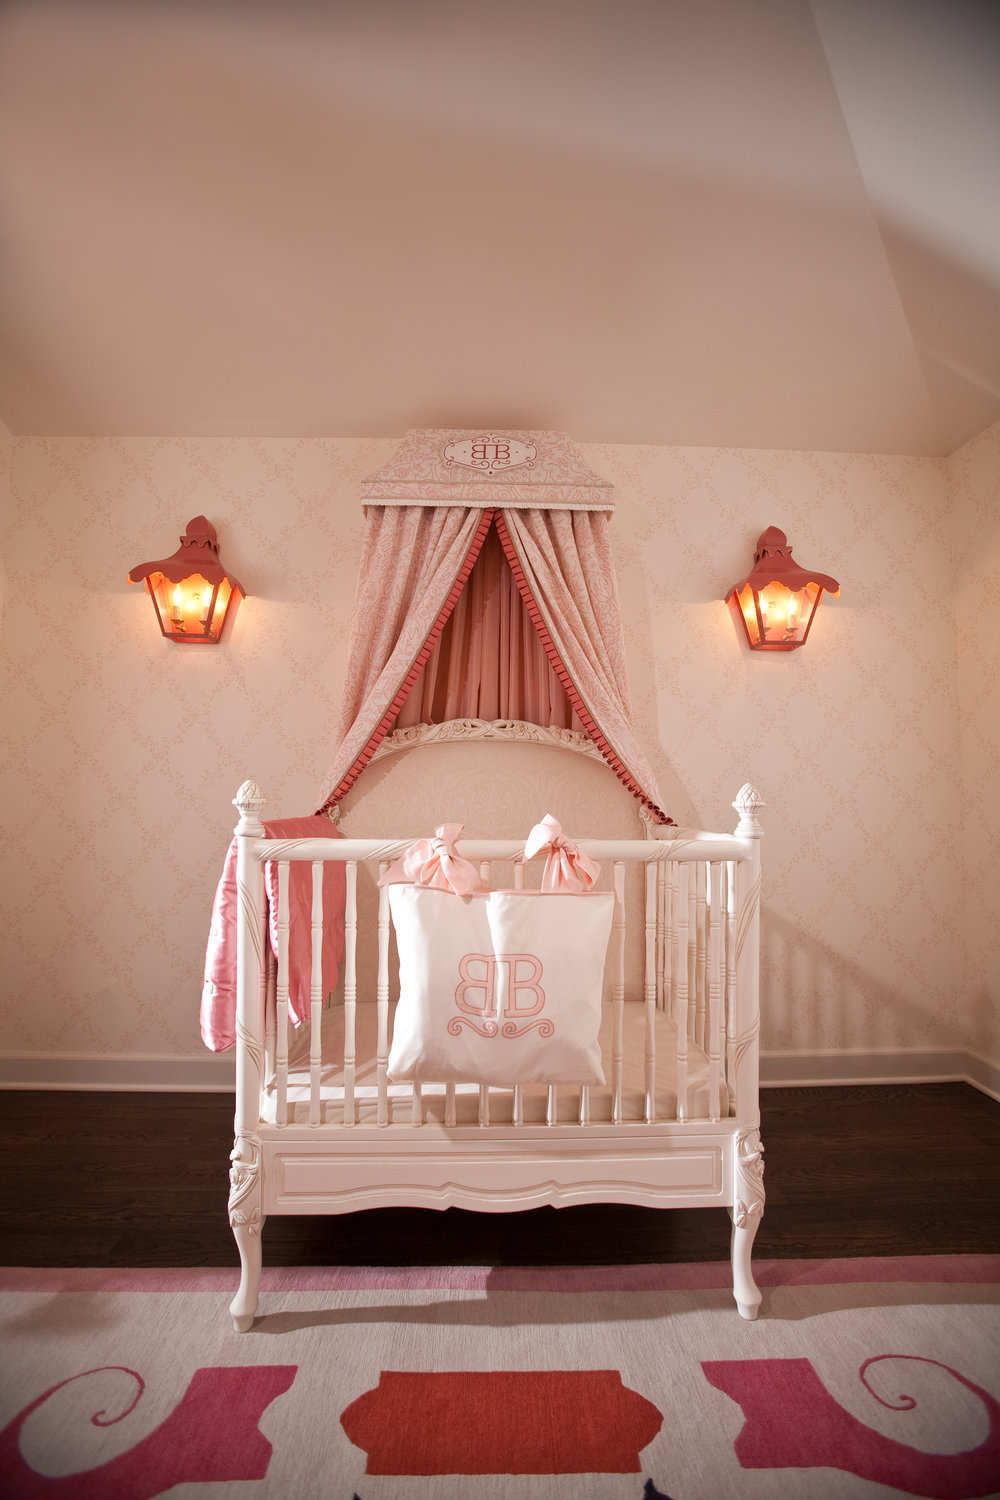 The focal point of any nursery is the baby in it. That's why we created this bespoke corniceover the crib, flanked by custom coral pagoda sconces.